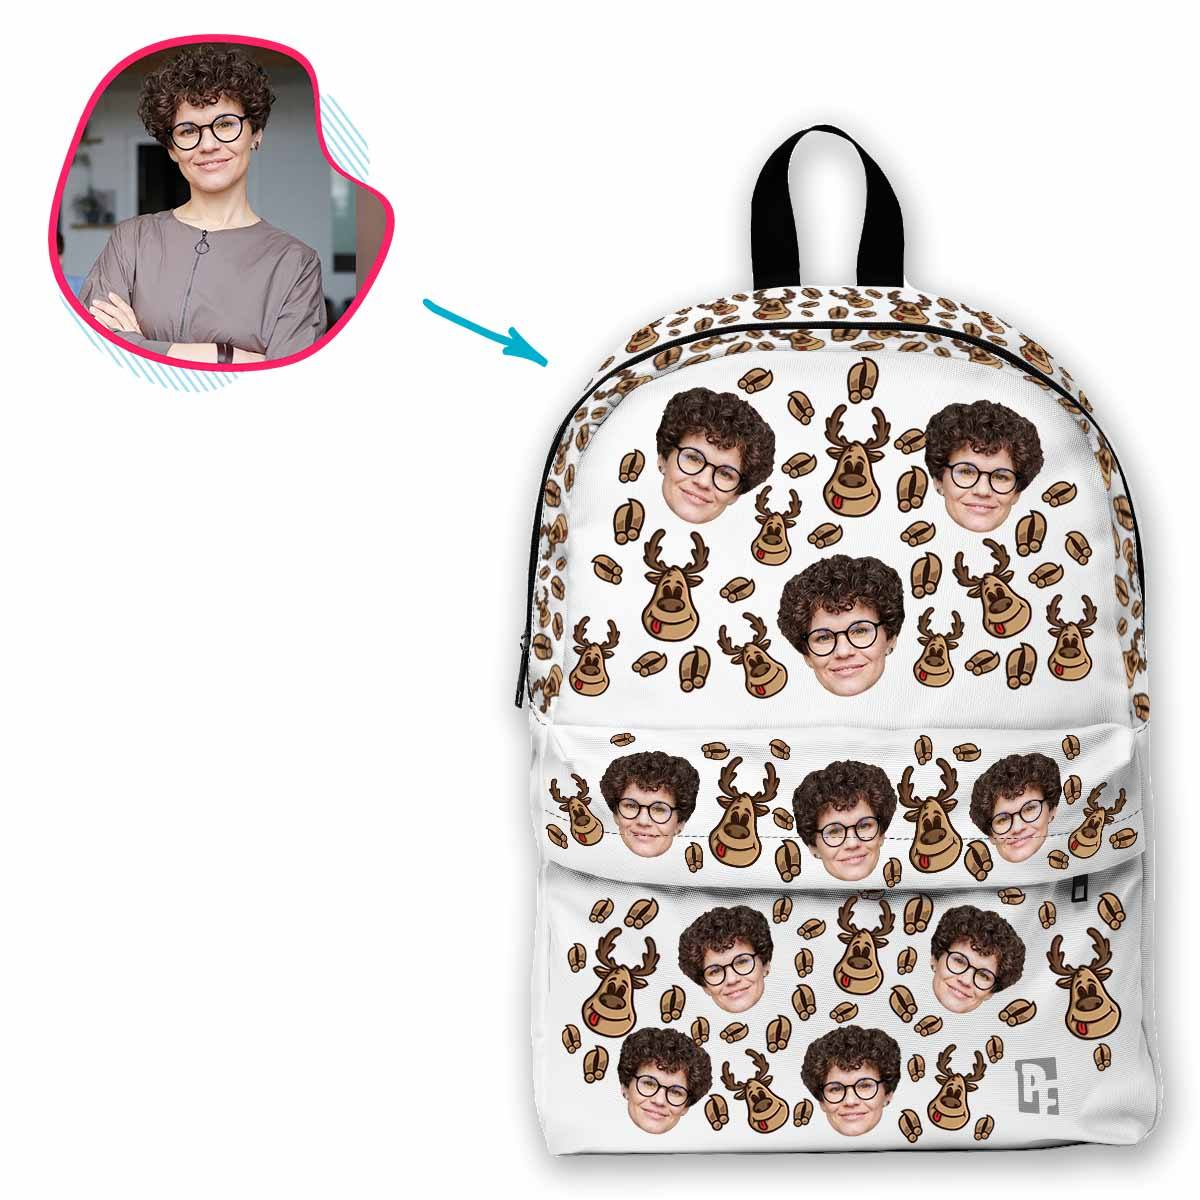 white Deer Hunter classic backpack personalized with photo of face printed on it